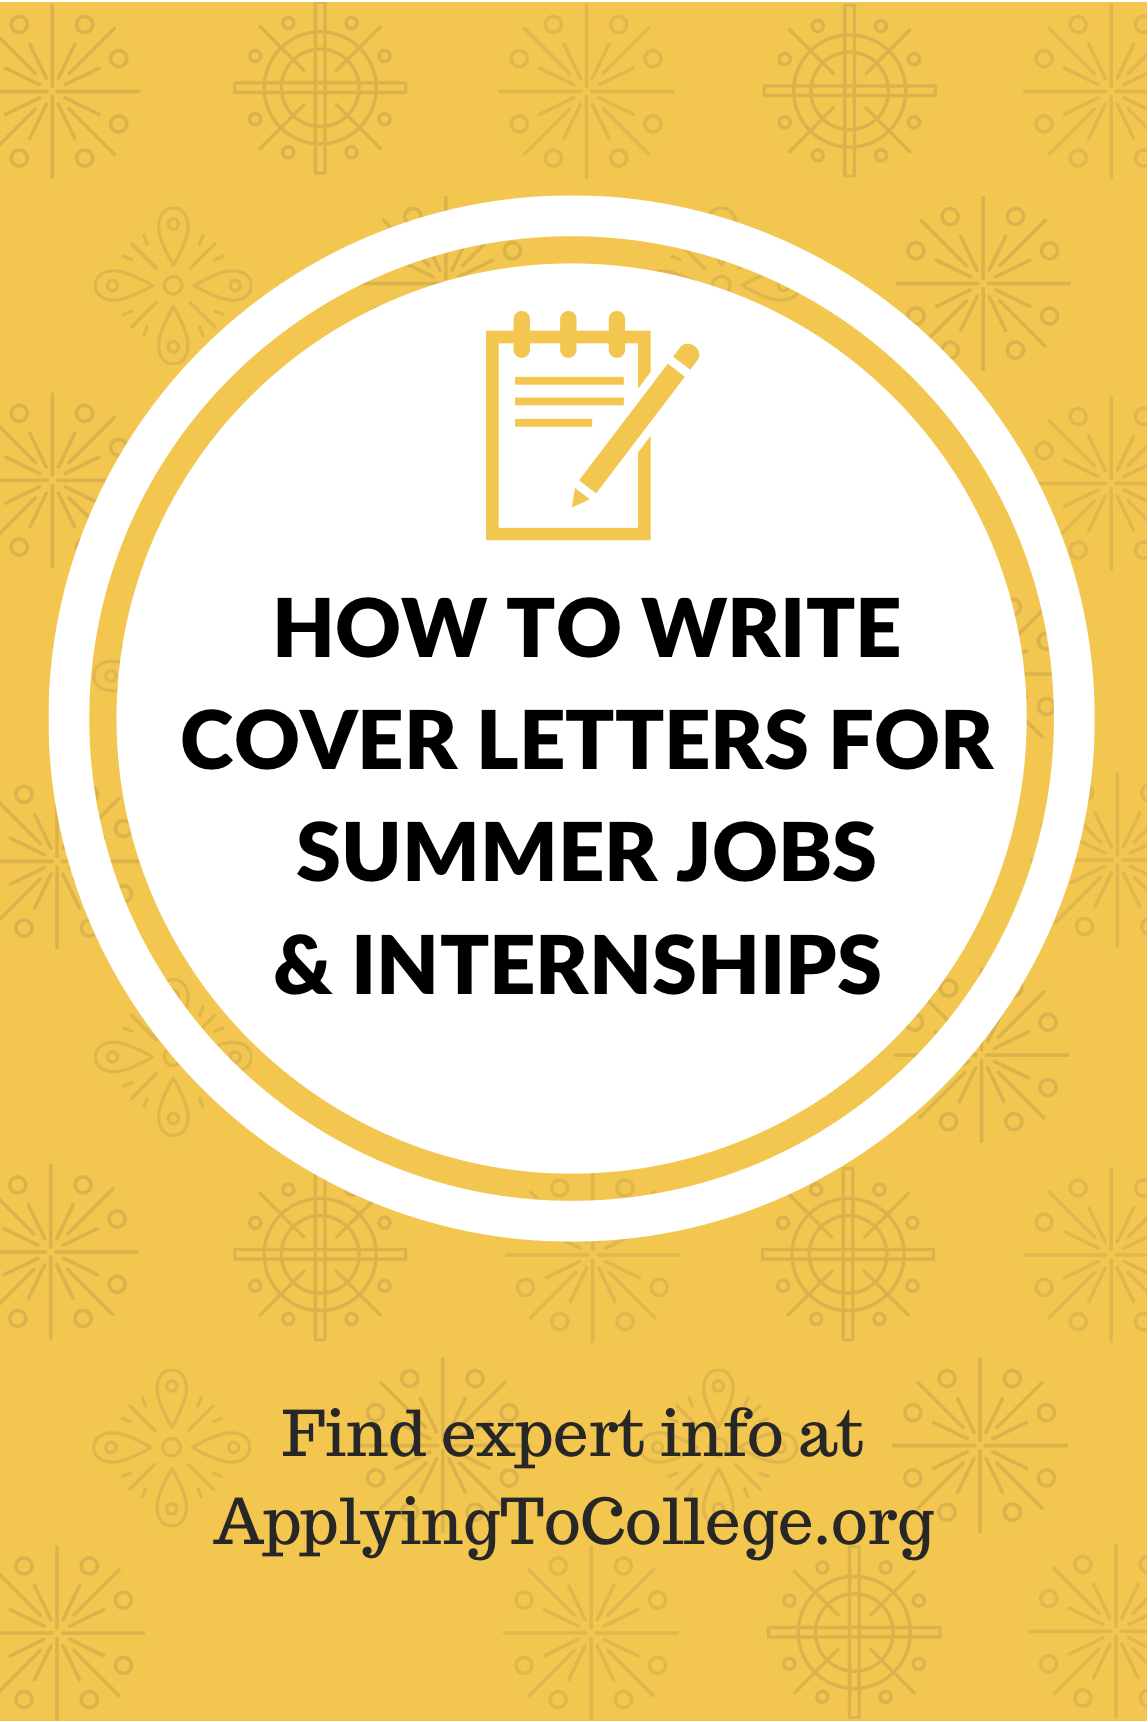 Cover Letters for Summer Jobs and